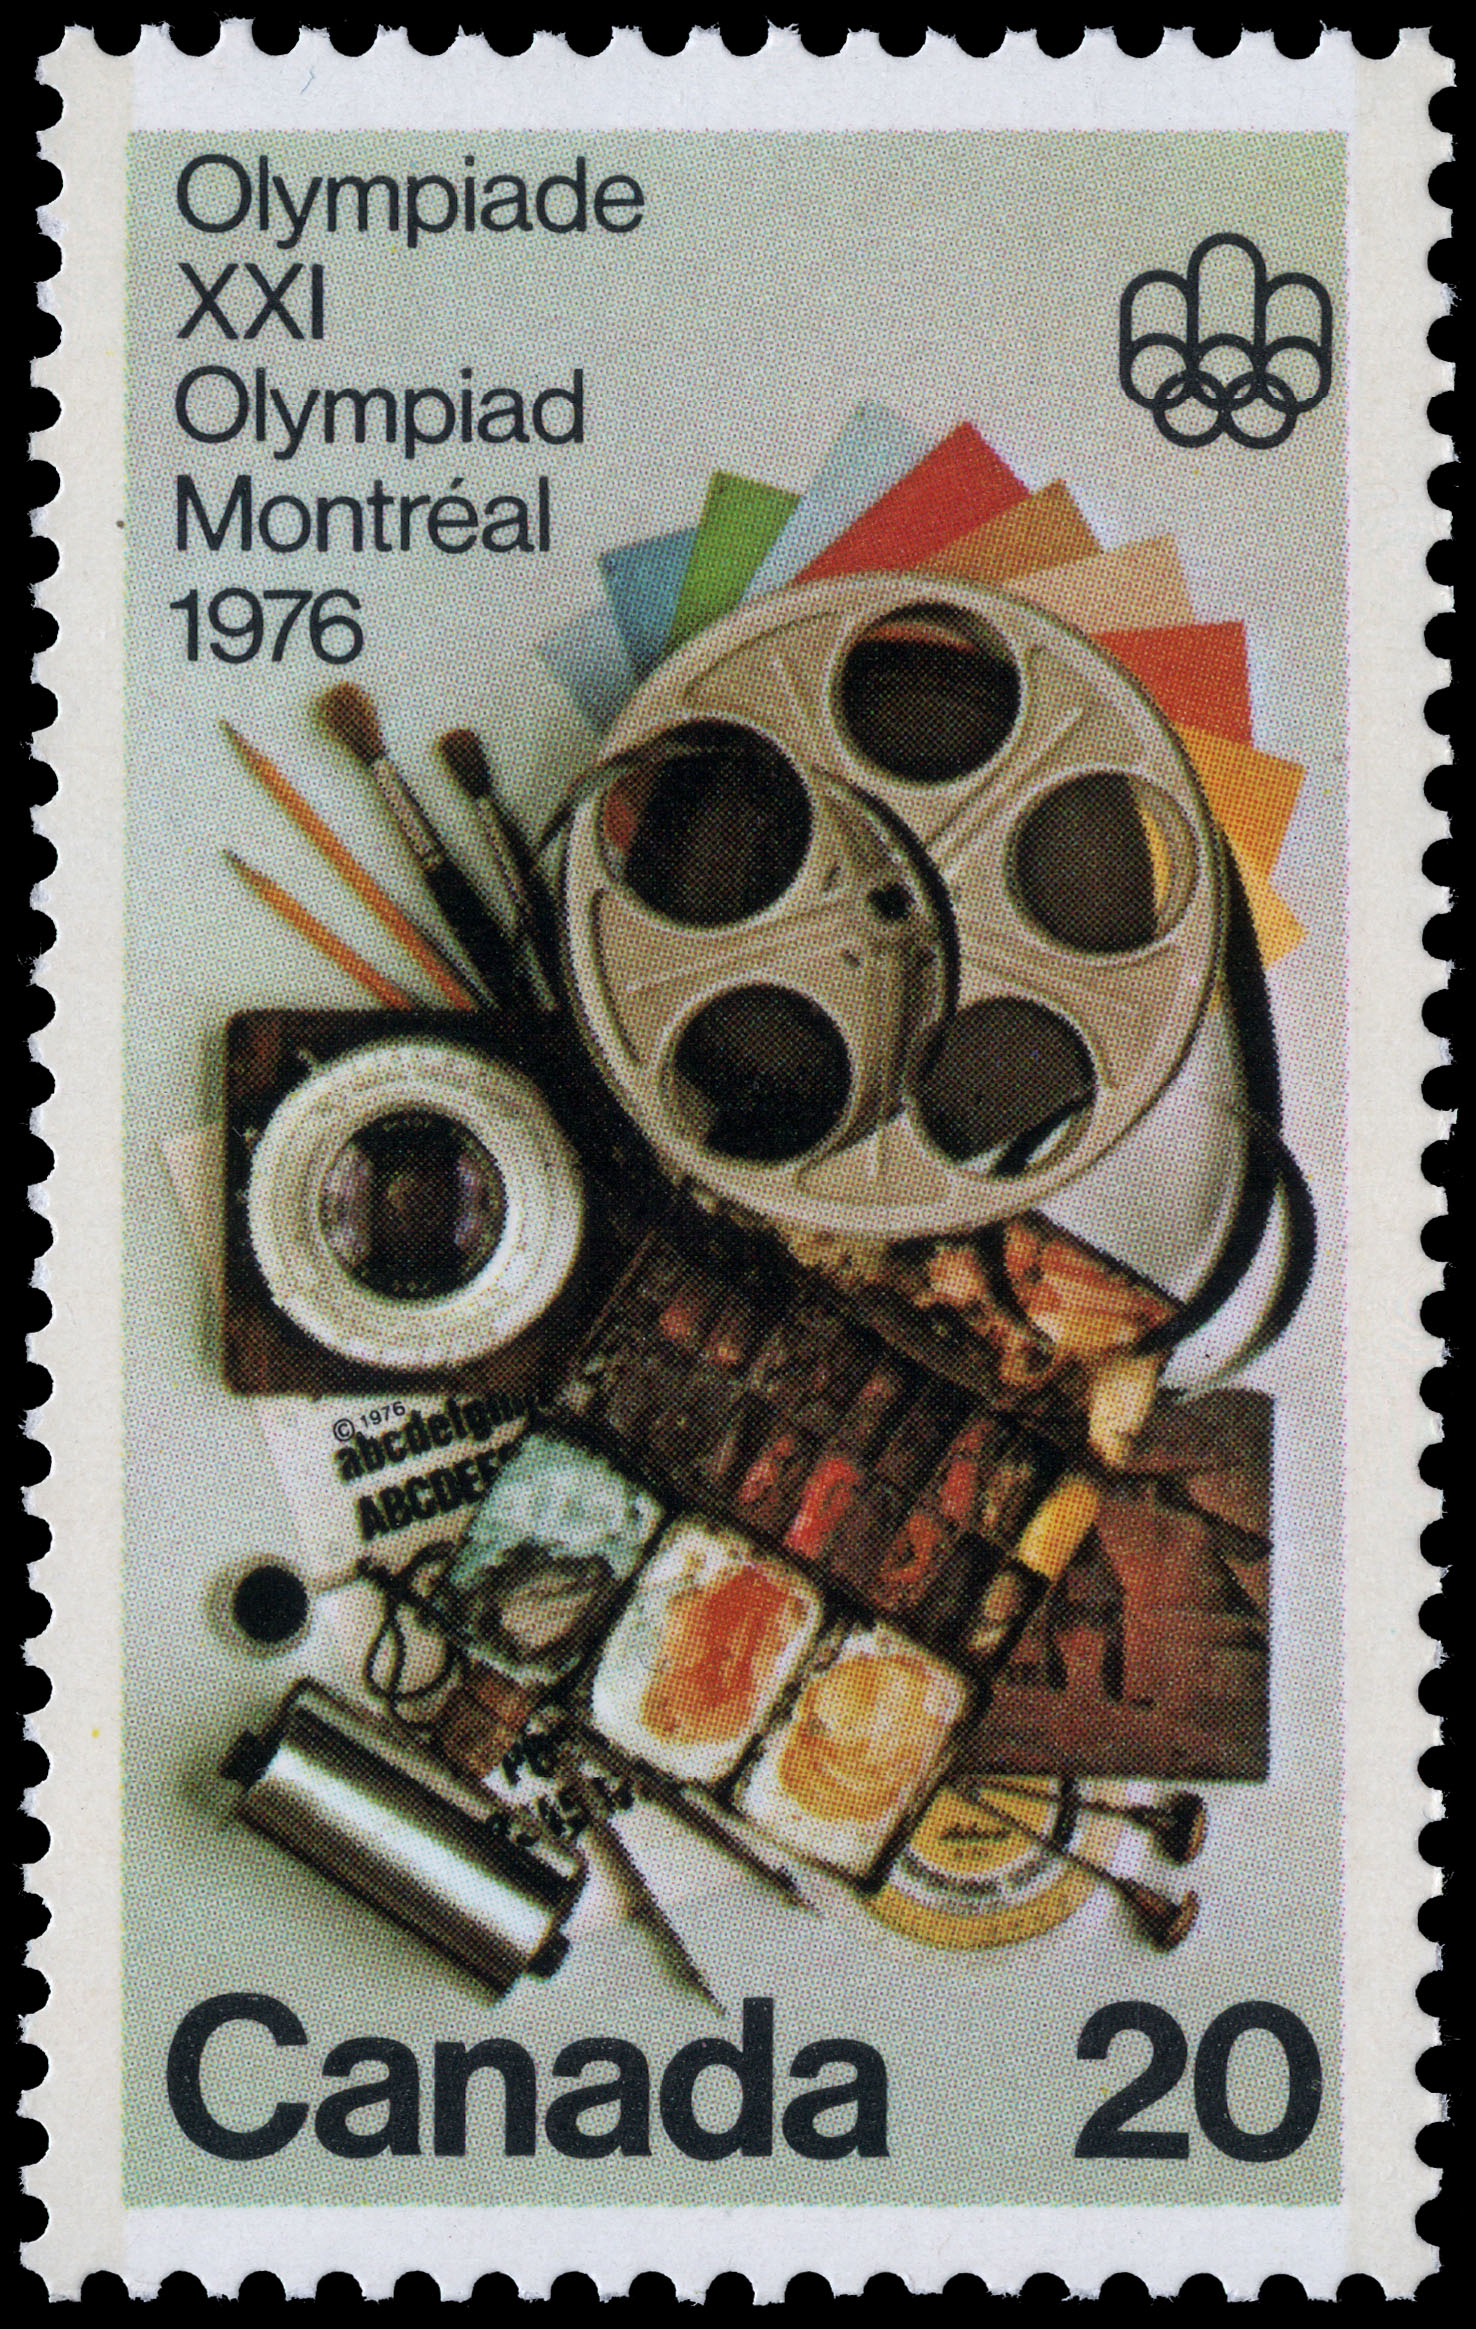 Communications Arts Canada Postage Stamp